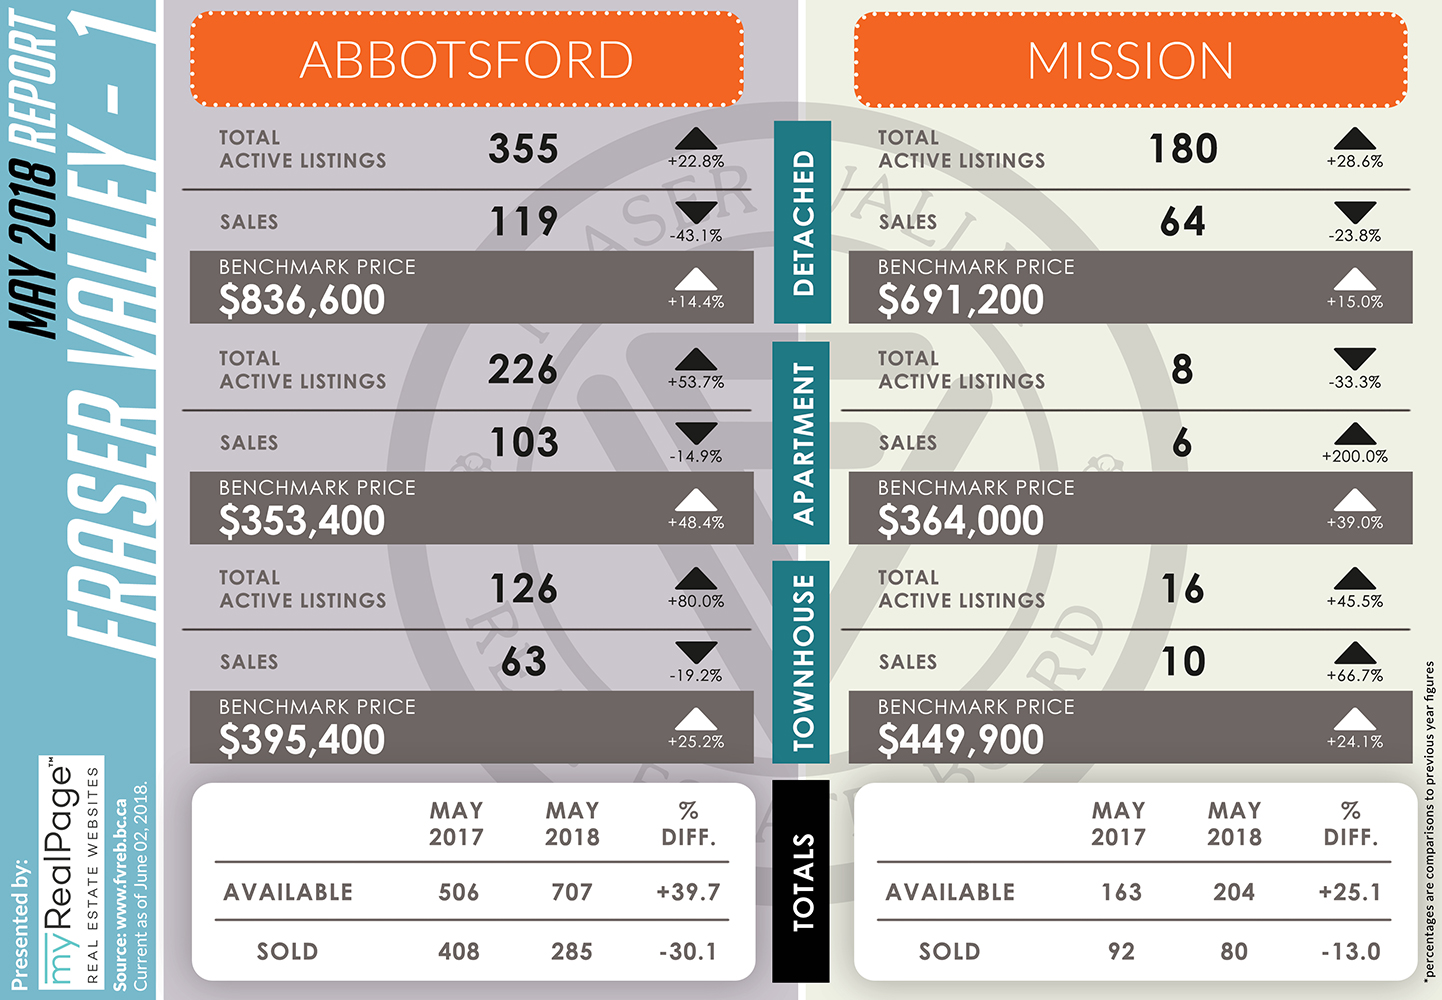 FVREB May 2018 Market Report Abbotsford Mission